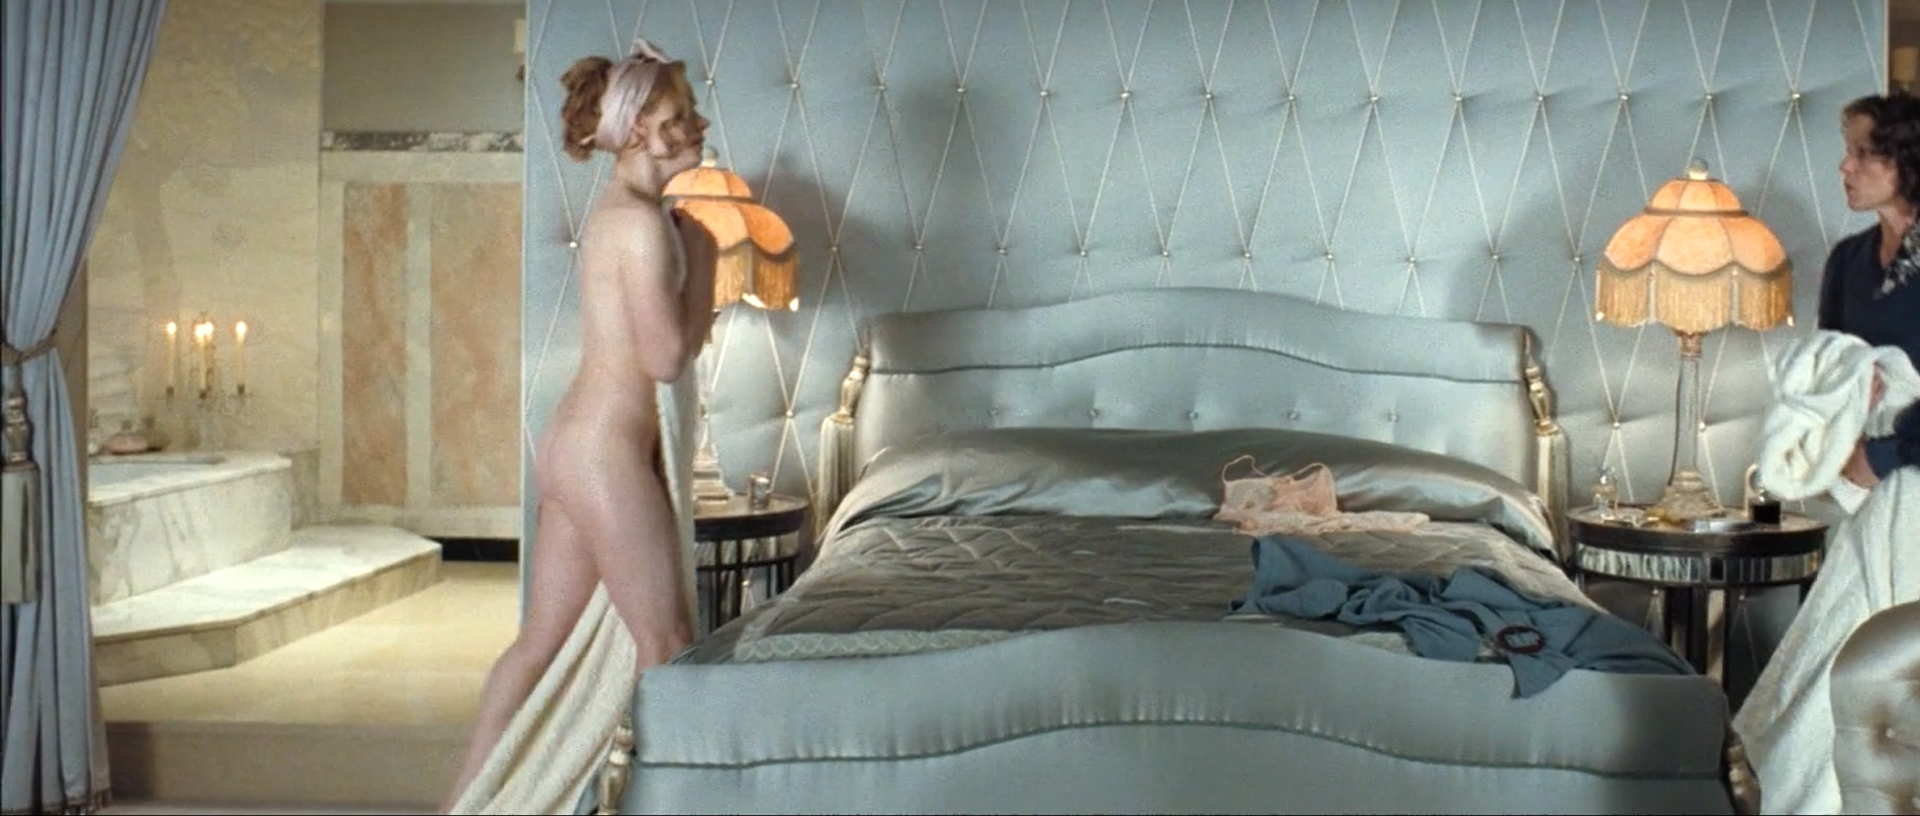 Amy Adams Nude Scene amy adams - miss pettigrew lives for a day (2008) - celebs